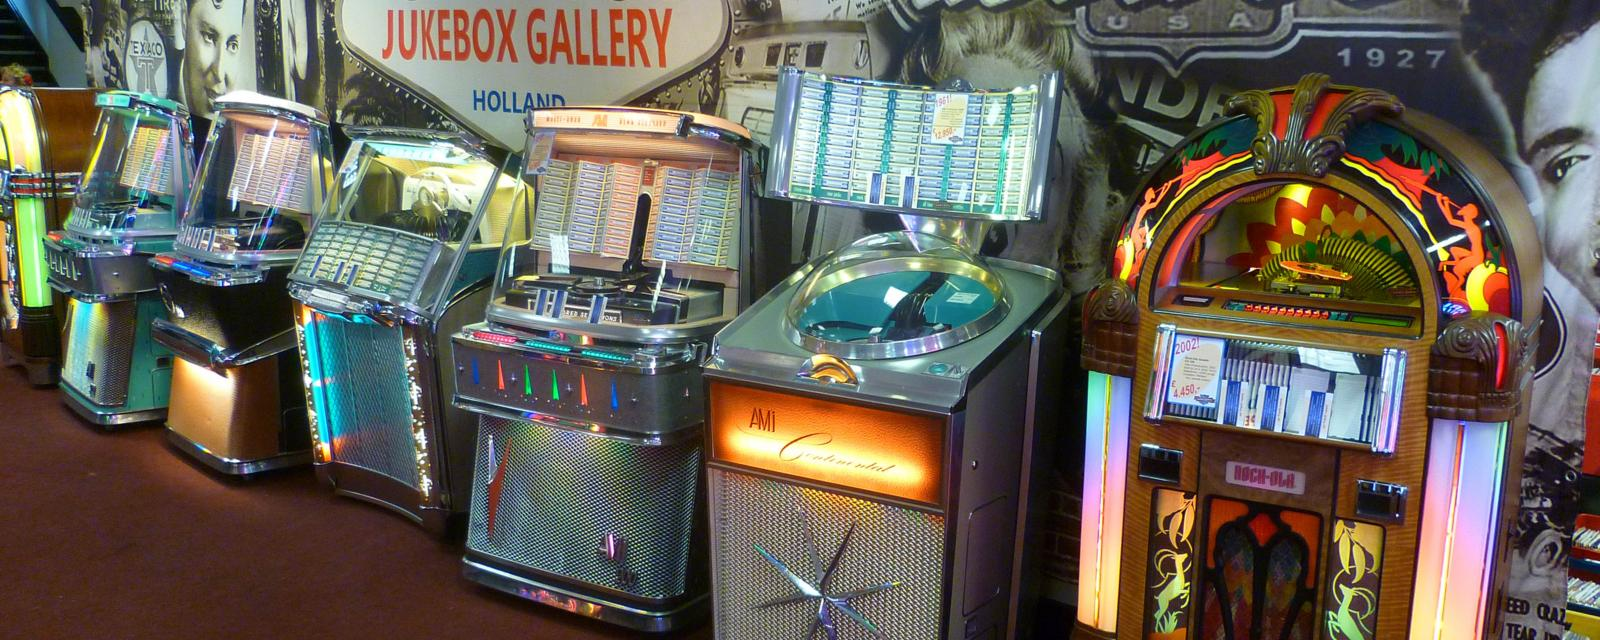 Betere Why fans of vintage vinyl love this brand-new machine - BBC Worklife RK-55